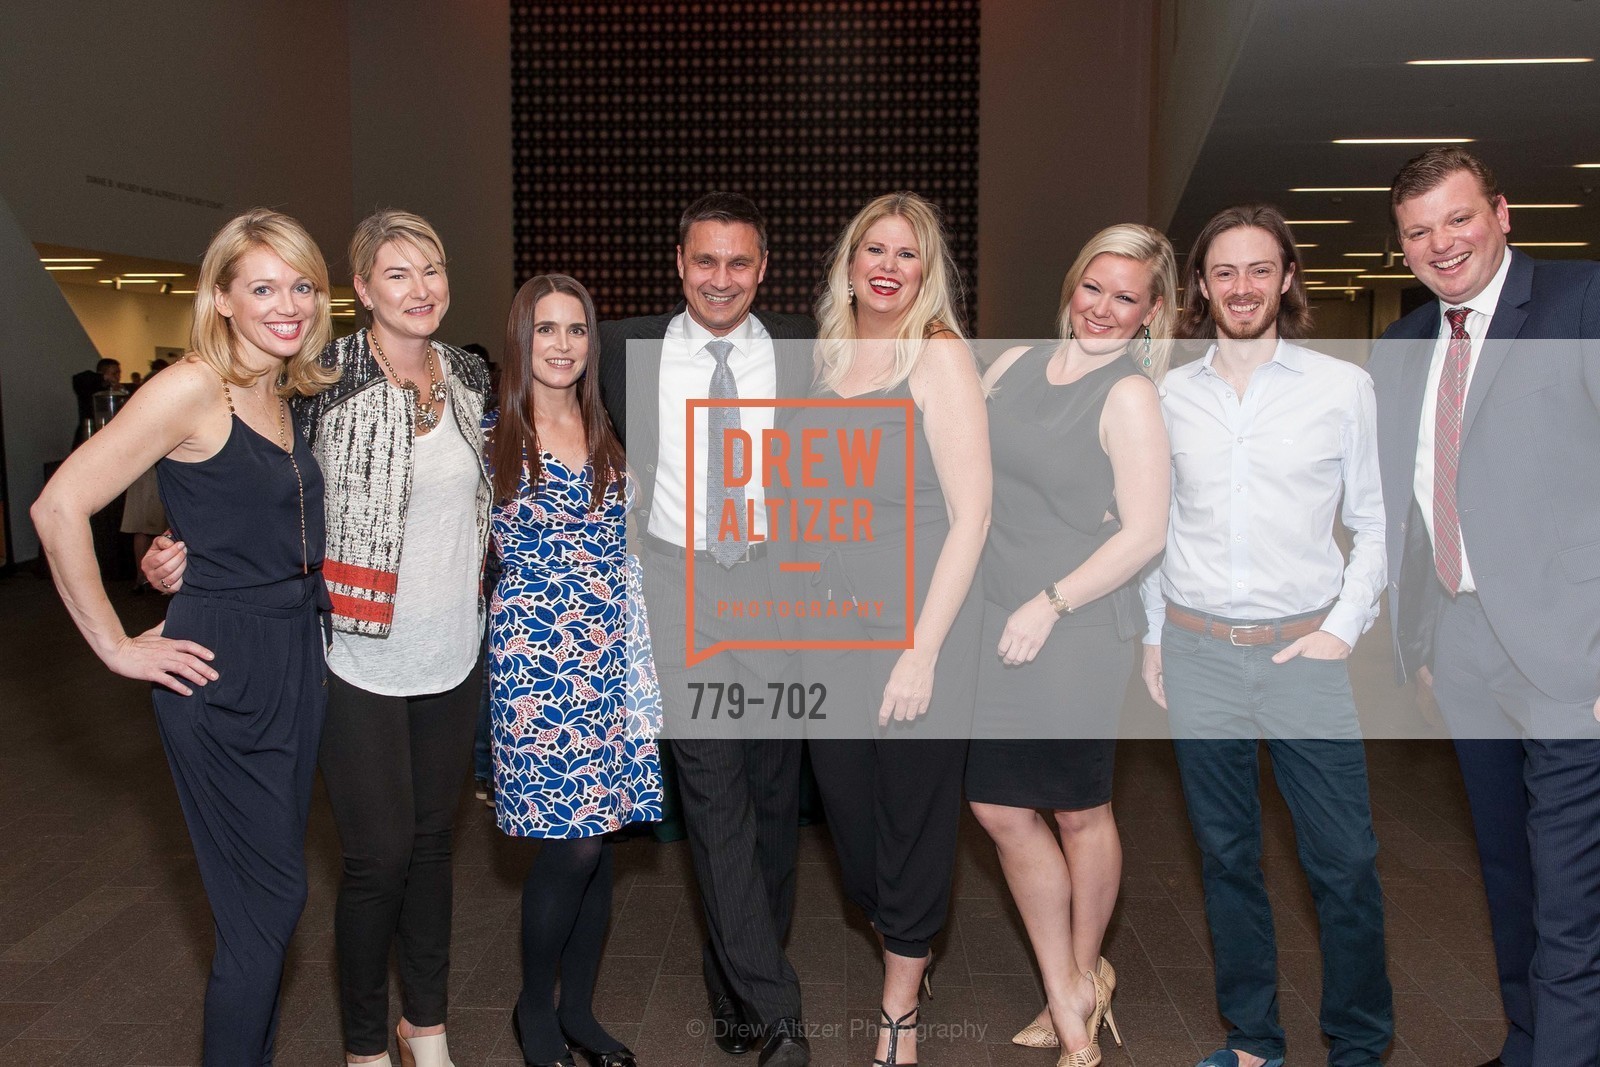 Amanda Riley, Vadim Nebuchin, Julie Yarbrough, Liz Curtis, Josh Reynolds, ARTPOINT:  Masterpieces from the National Galleries of Scotland and Scotch Tastings, US, May 7th, 2015,Drew Altizer, Drew Altizer Photography, full-service agency, private events, San Francisco photographer, photographer california